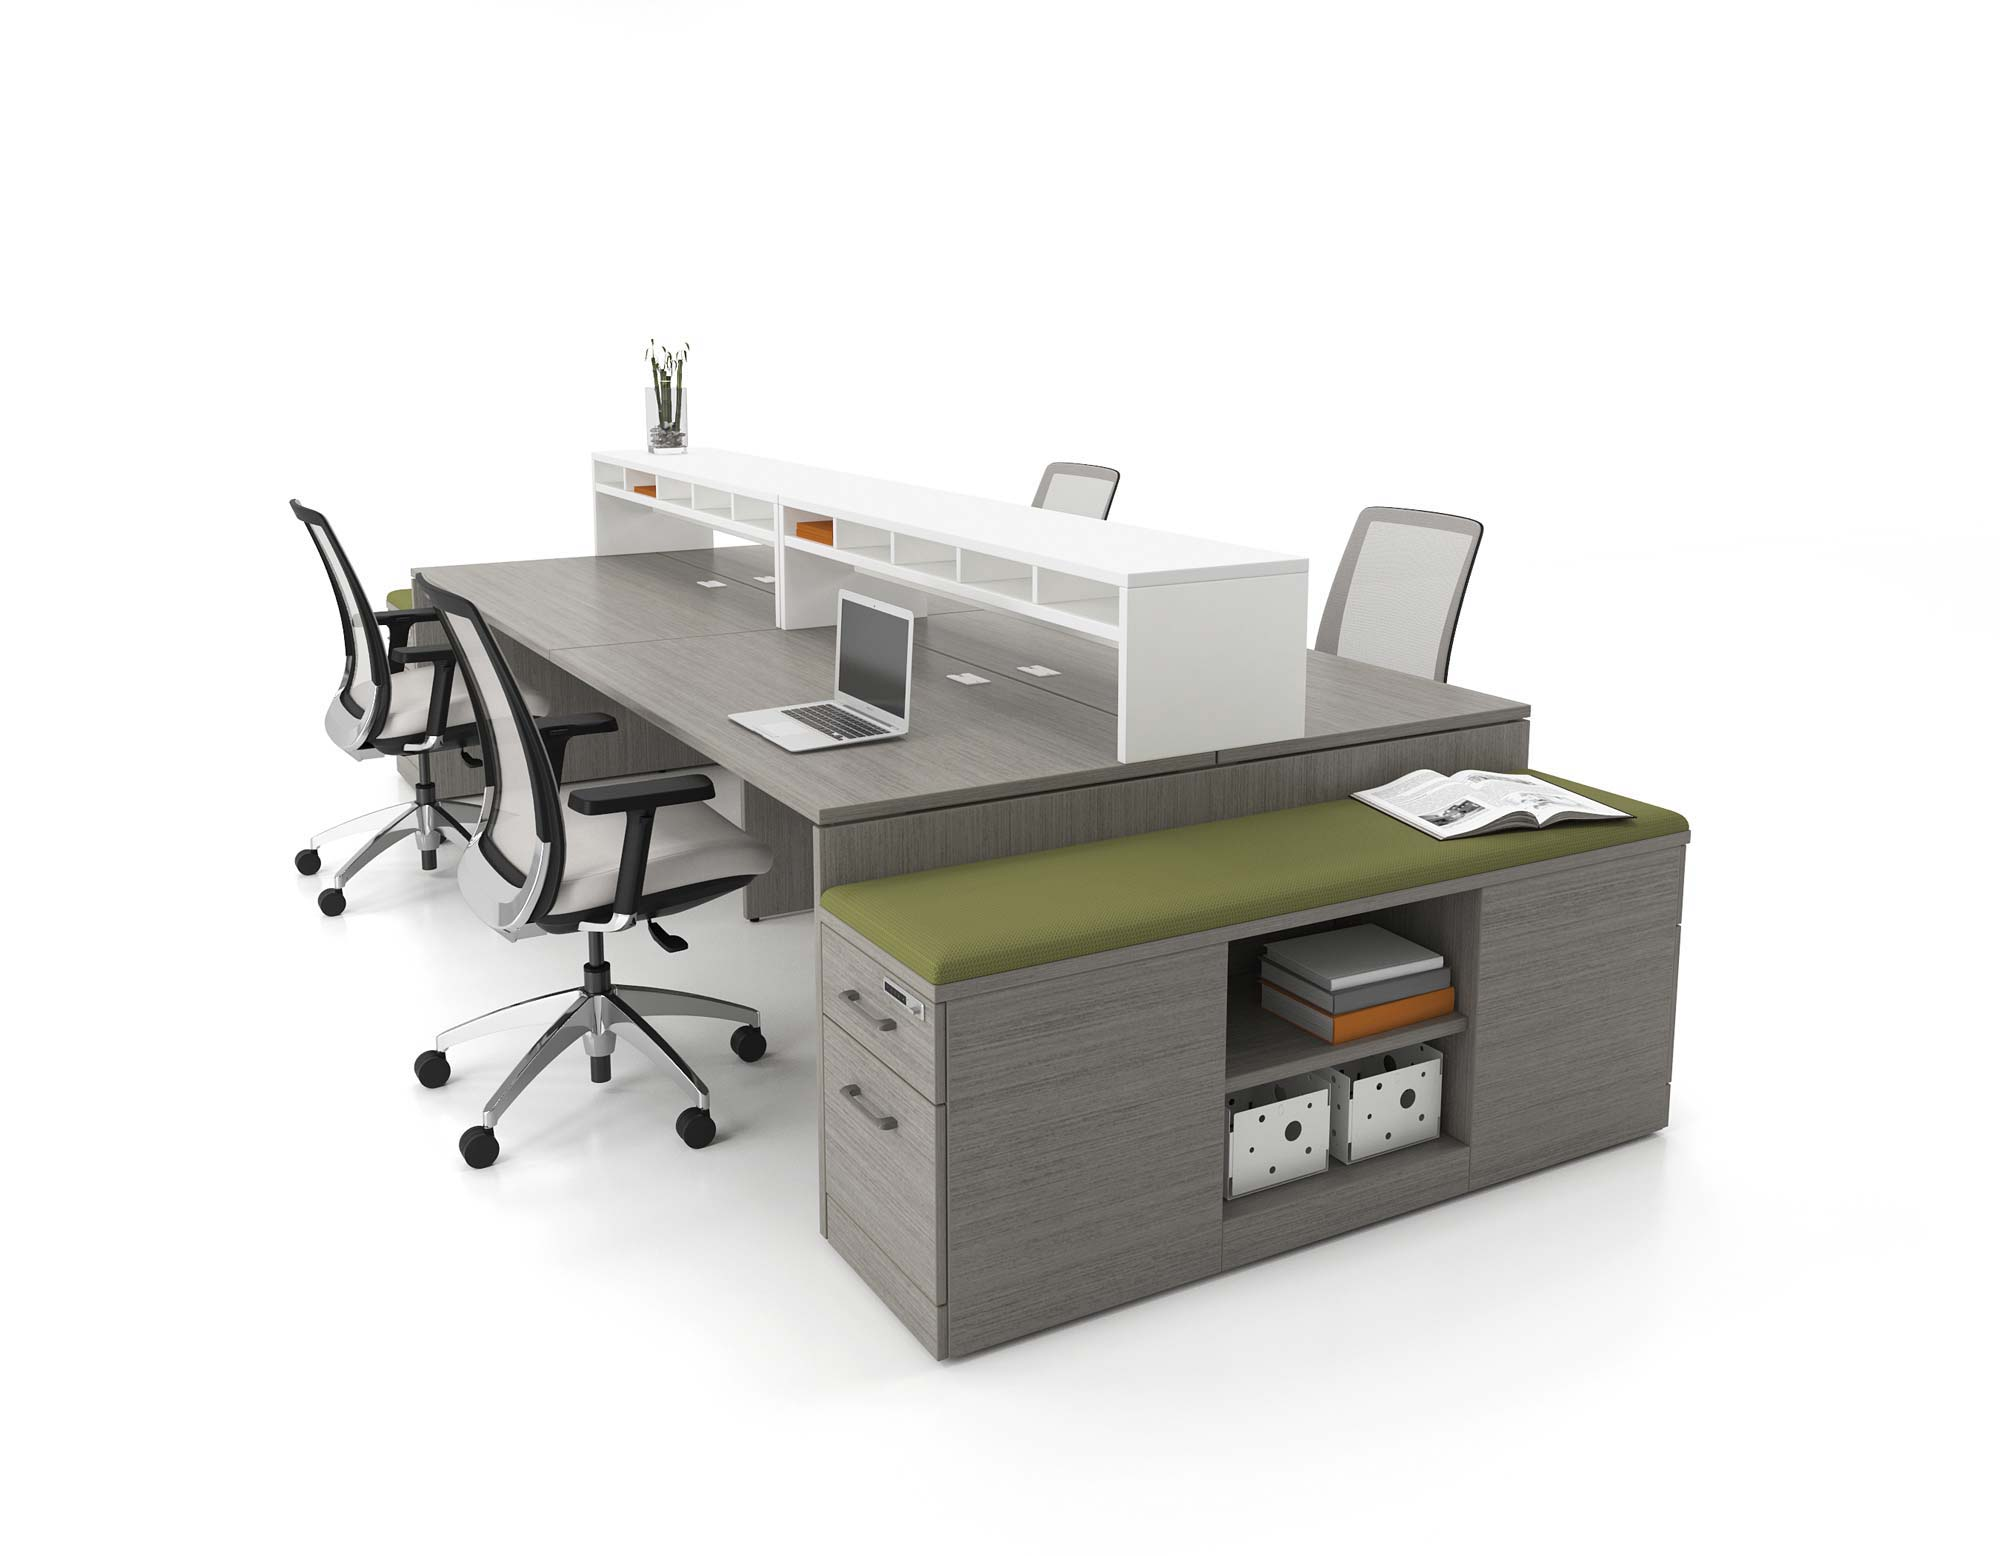 Office Furniture Kitchener Waterloo Richmond Hill Office Furniture Interior Design Space